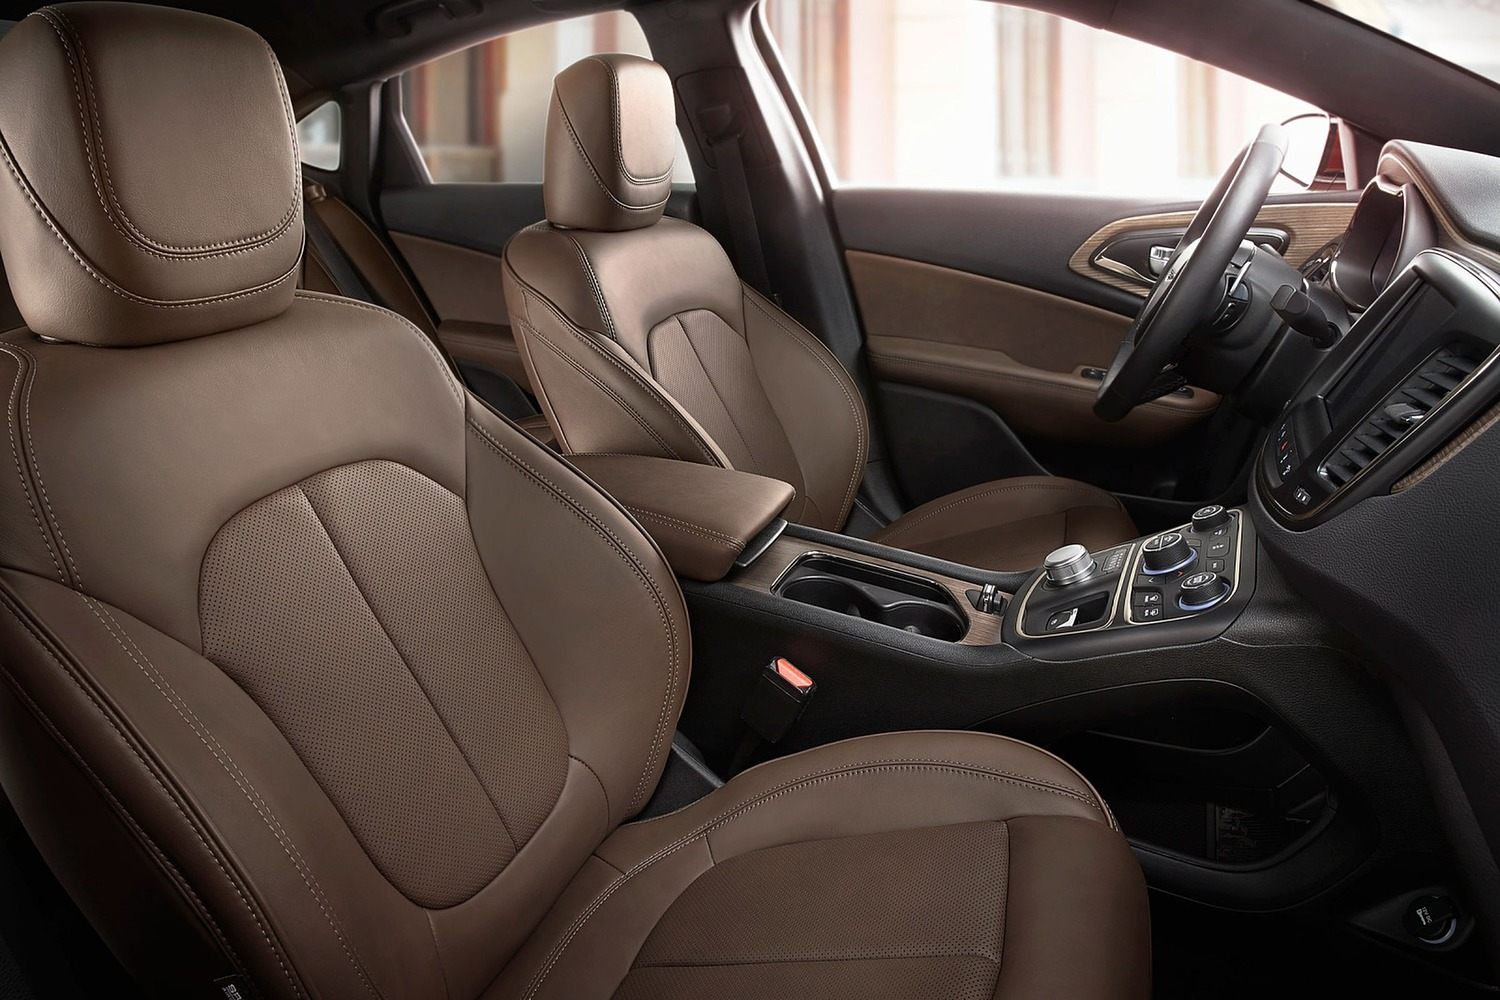 2016 Chrysler 200 C Sedan Interior